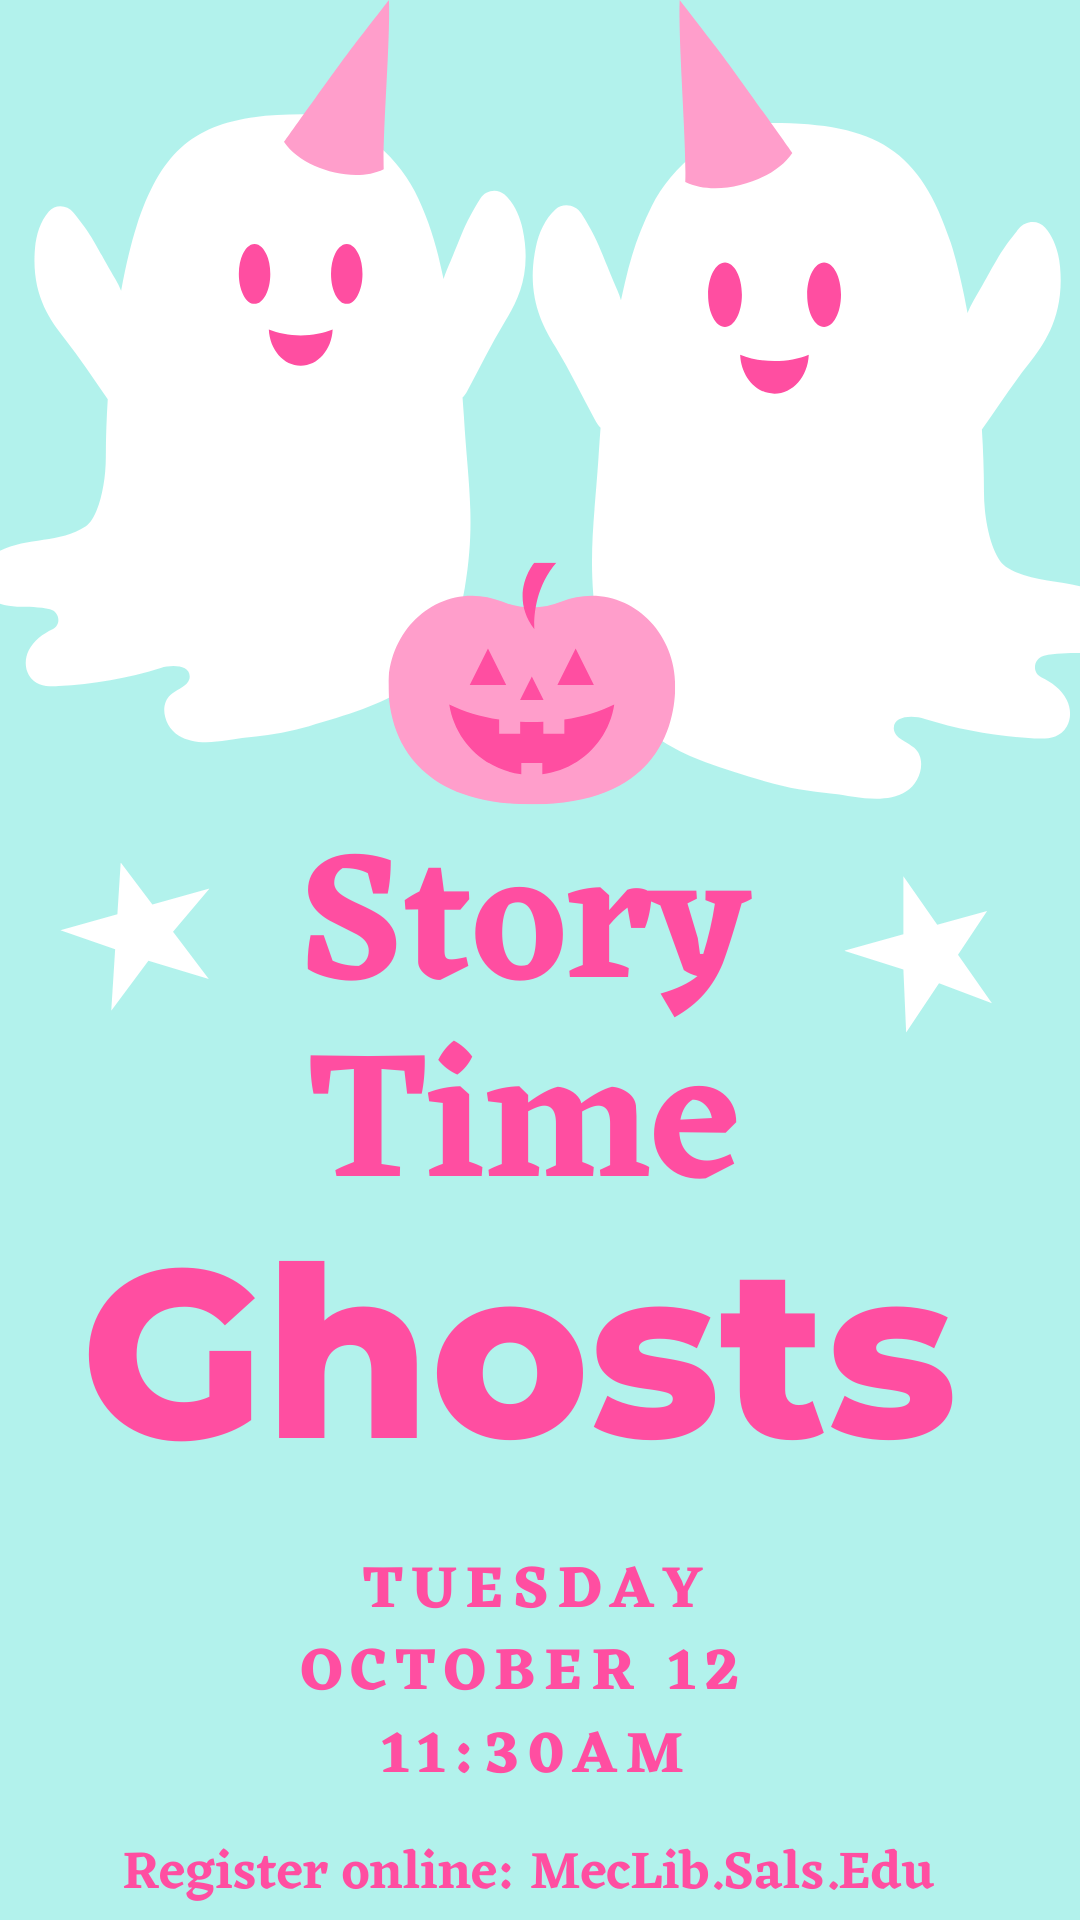 Story Time: Ghosts